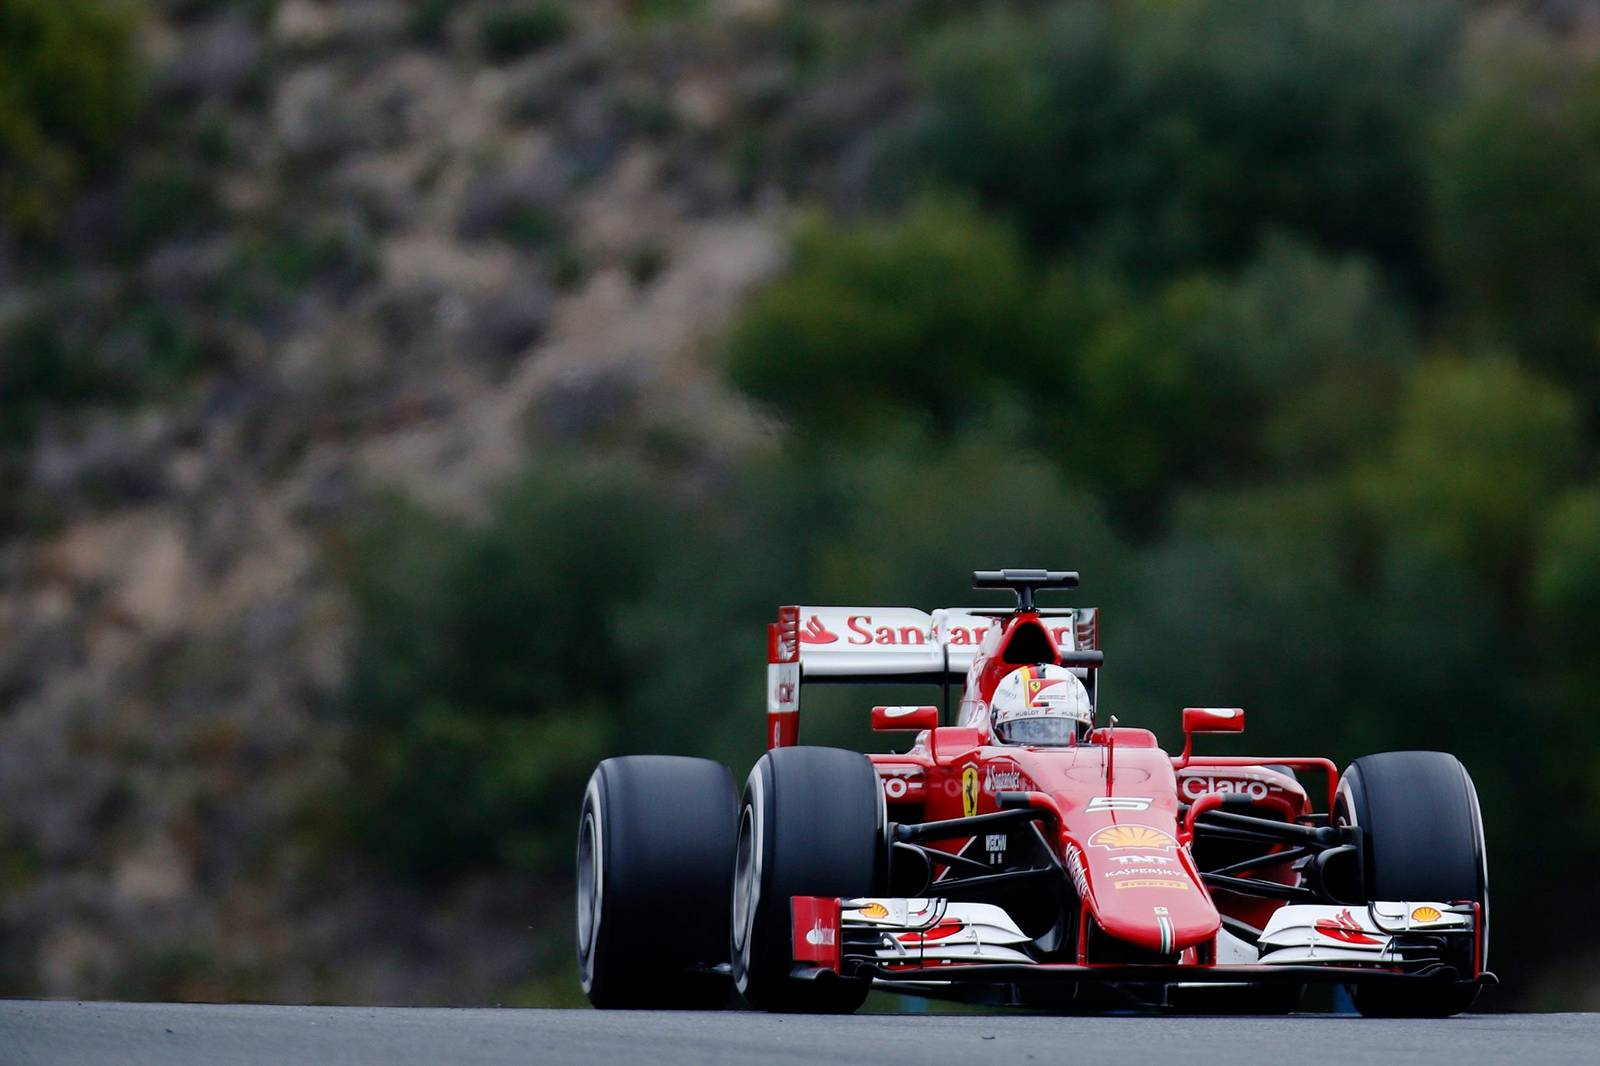 formula 1 vettel fastest again for ferrari on day 2 jerez test gtspirit. Black Bedroom Furniture Sets. Home Design Ideas